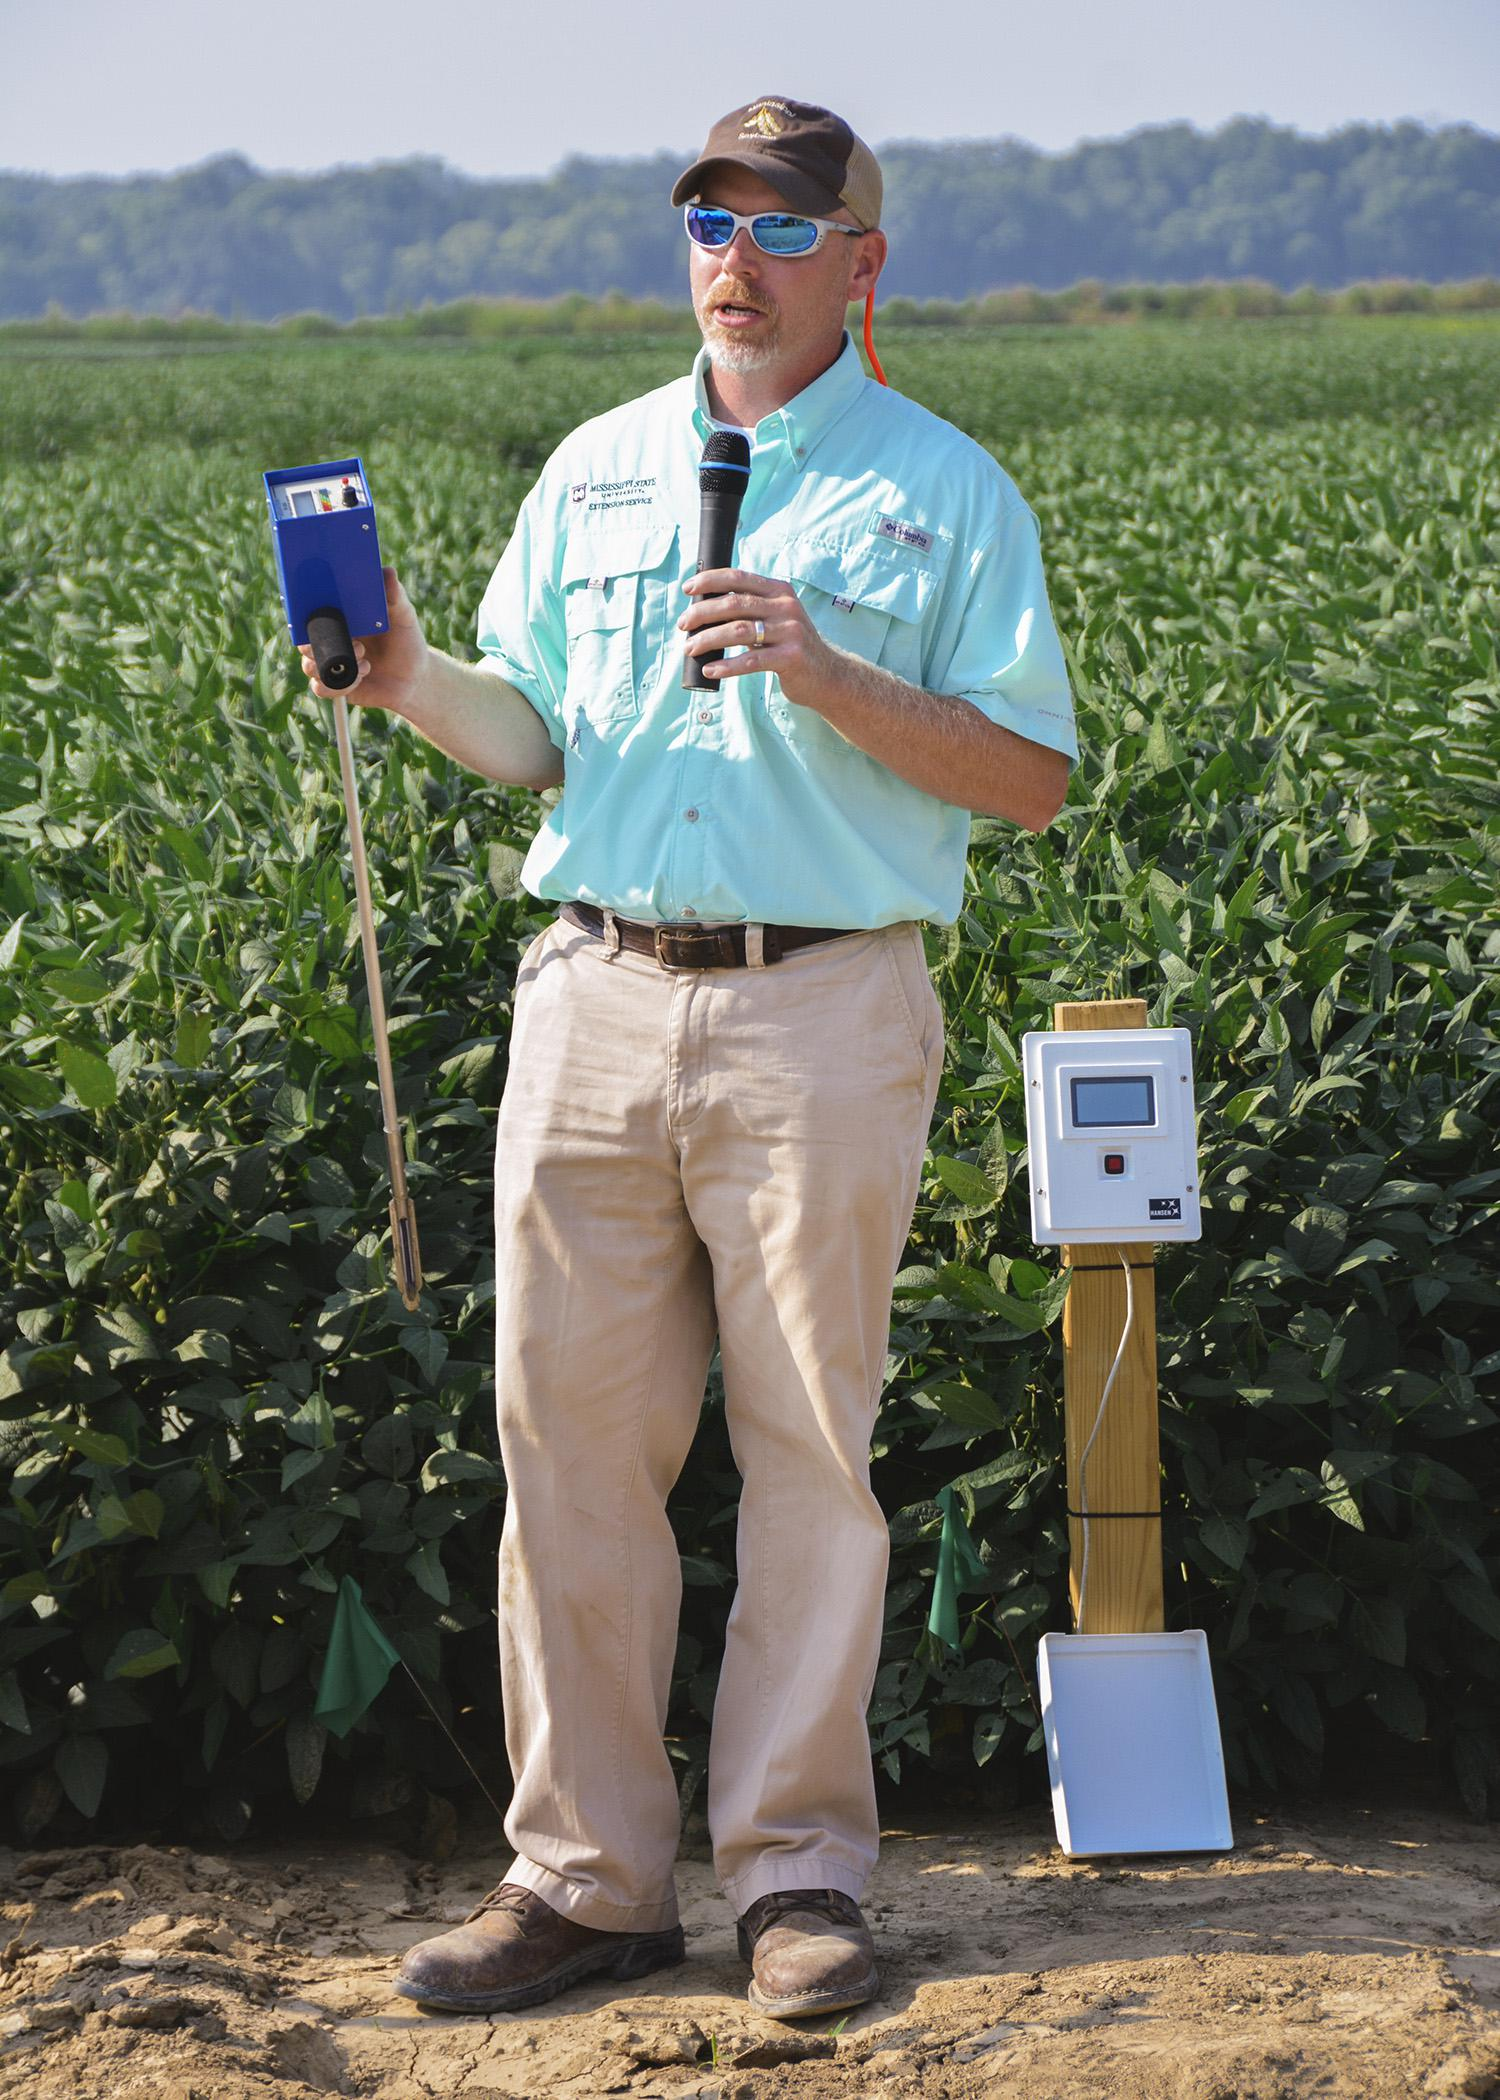 Jason Krutz, an irrigation specialist at the MSU Delta Research and Extension Center, reviews different types of moisture meters available to help farmers determine irrigation timing. Krutz took part in the North Mississippi Research and Extension Center's Agronomic Row Crops Field Day in Verona, Mississippi, on Aug. 7, 2014. (Photo by MSU Ag Communications/Linda Breazeale)